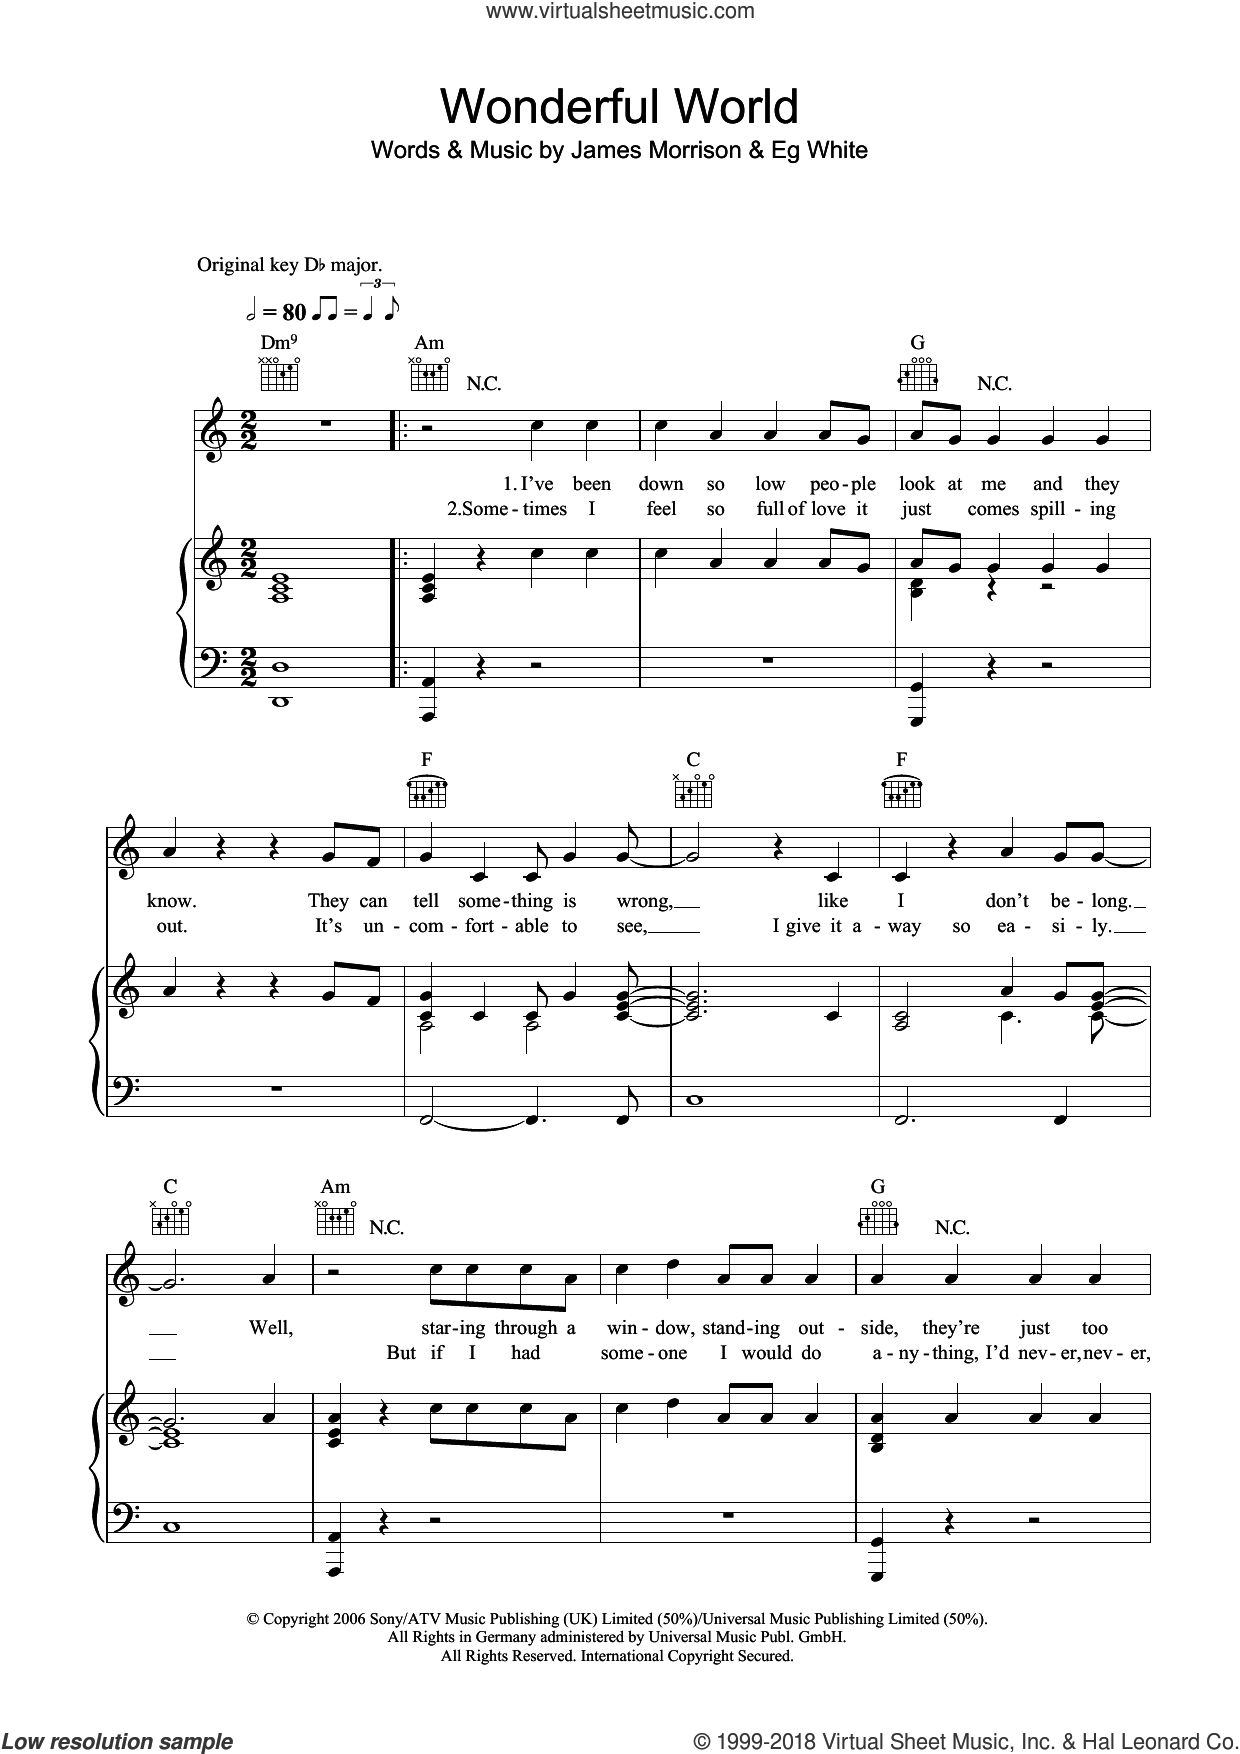 Wonderful World sheet music for voice, piano or guitar by Eg White